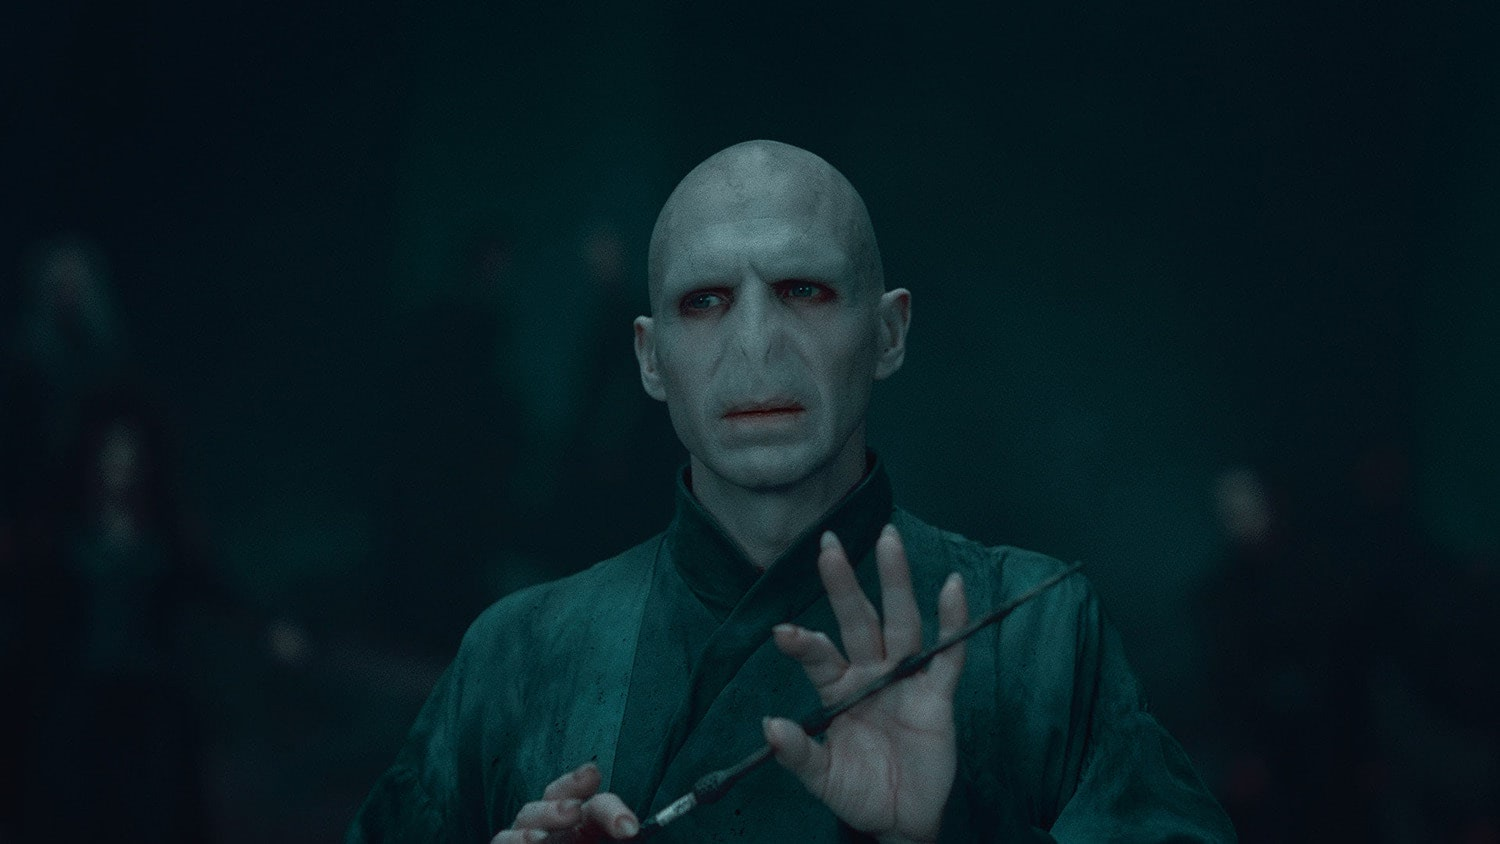 Voldemort with the Elder Wand